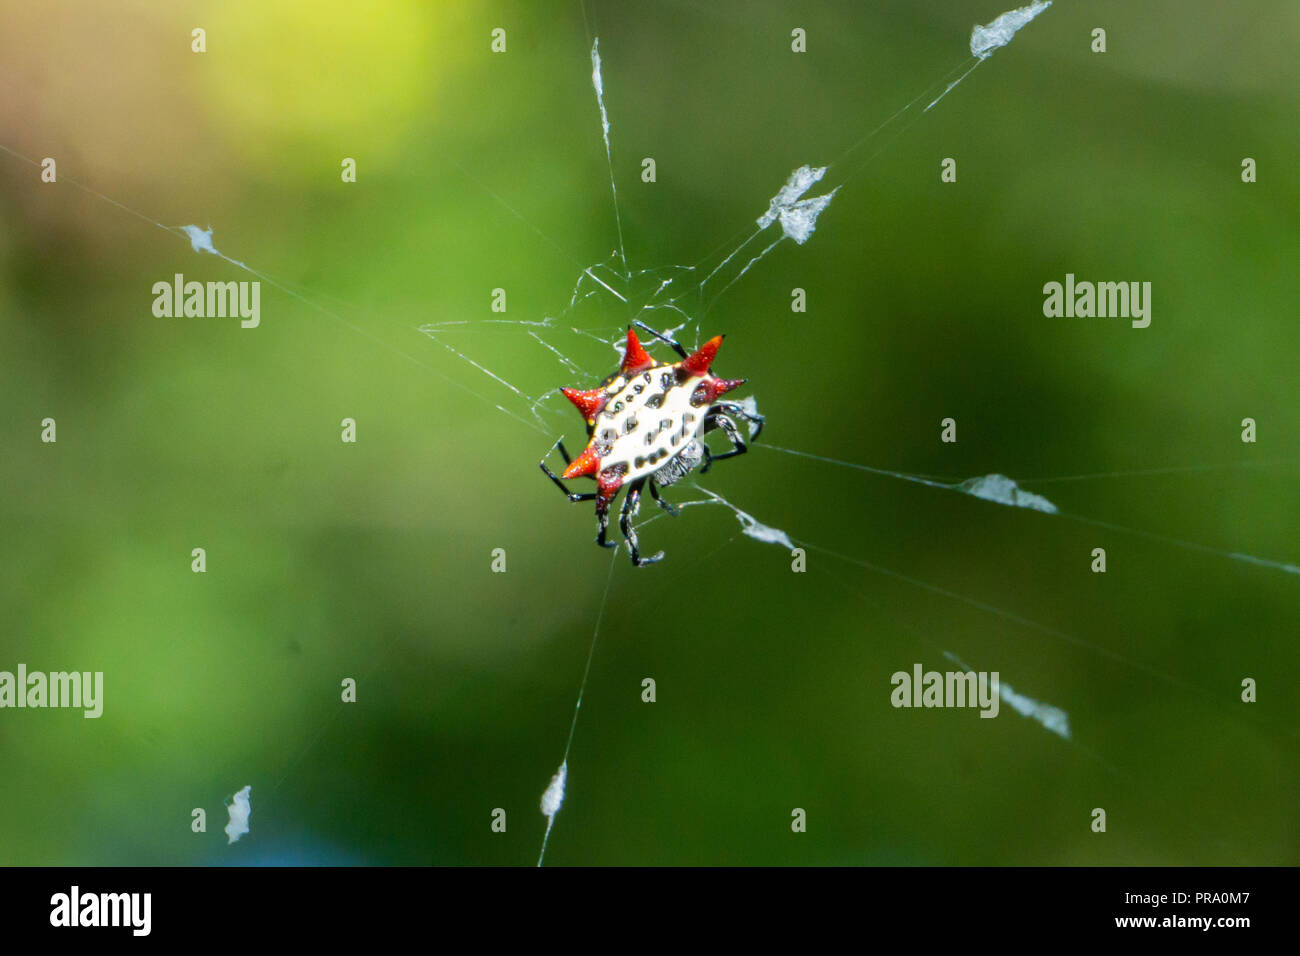 A red and yellow Spinybacked Orbweaver spider (Gasteracantha cancriformis) on its web at the Audubon of Martin County, Stuart, Florida, US - Stock Image